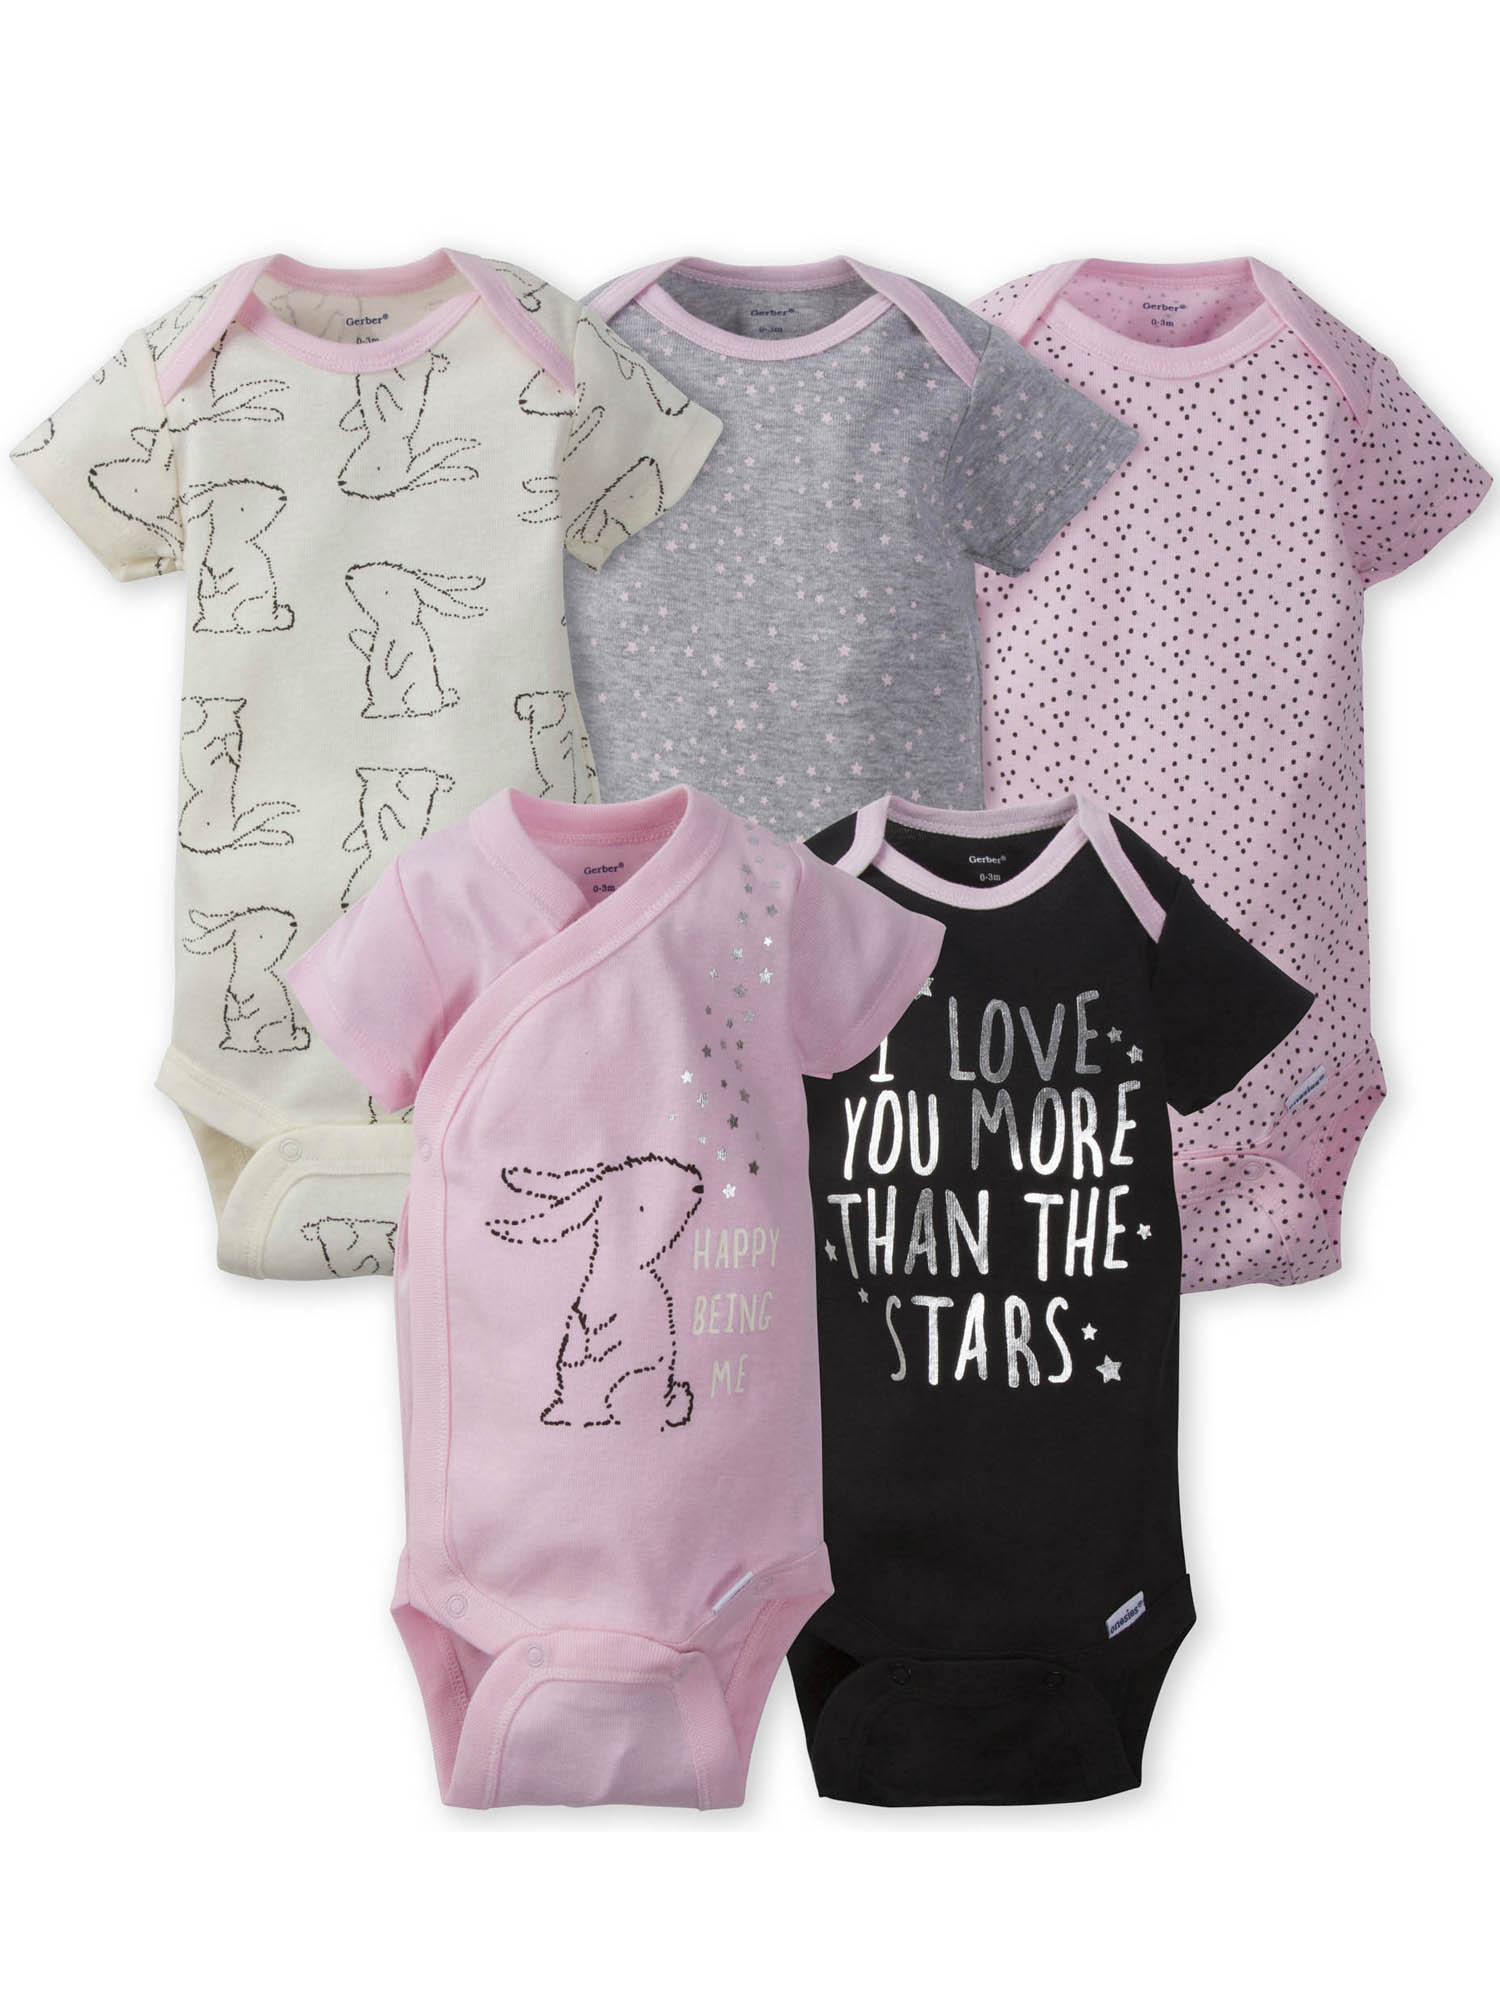 Toddler Baby Girls Bodysuit Short-Sleeve Onesie I Love You More Than Chocolate Print Outfit Spring Pajamas